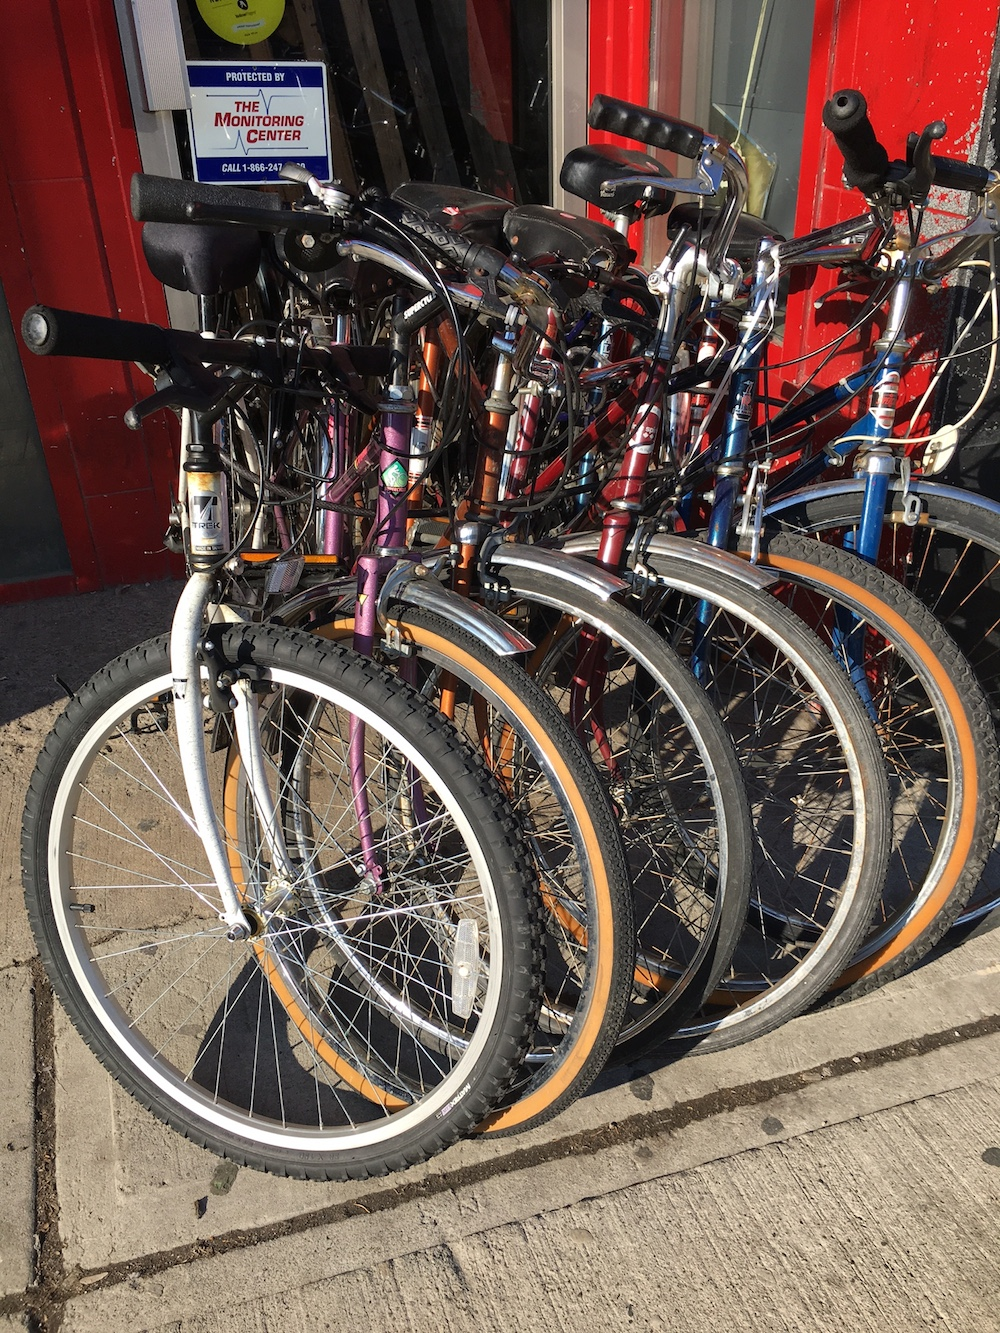 No One Wants to Talk About Second Hand Bikes | dandyhorse